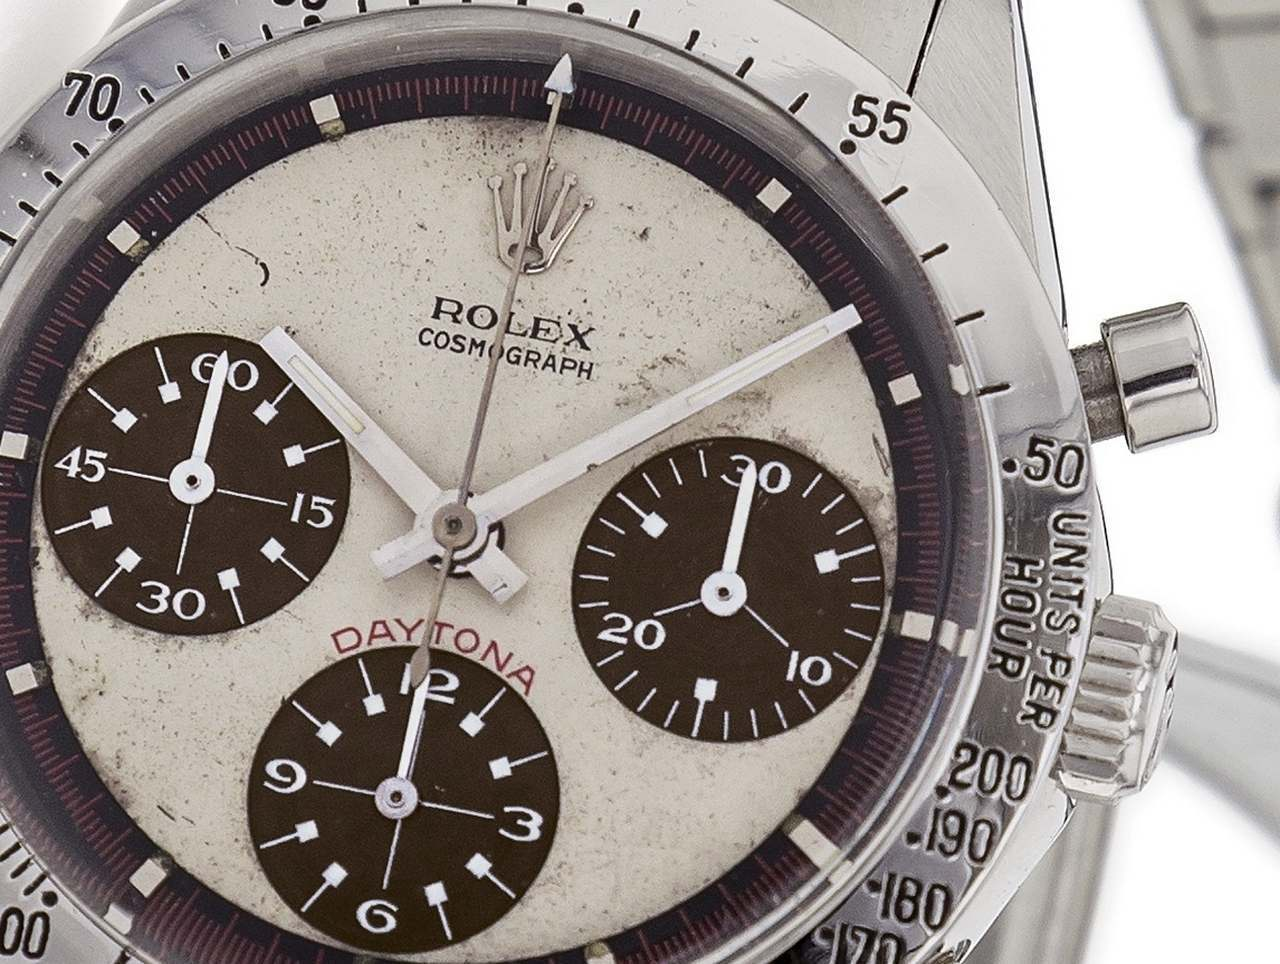 ROLEX REF. 6239 PAUL NEWMAN WHITE DIAL TROPICAL SUB-COUNTERS STEEL Rolex, Cosmograph Daytona, No. 1782156, Ref. 6239.source_antiquorum1